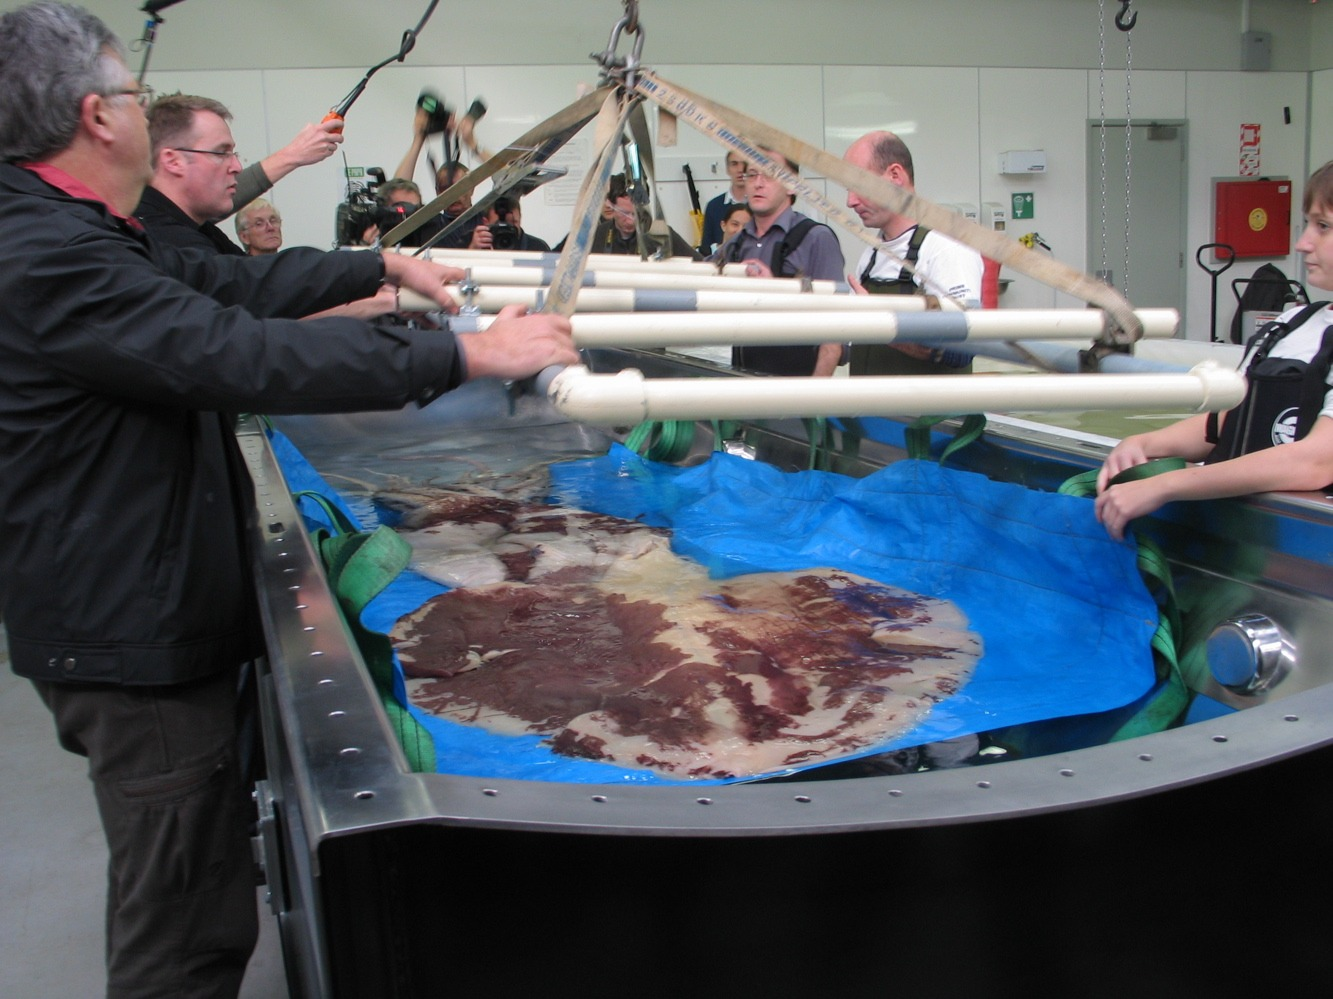 The team loading the squid into the tank © Copyright Museum of New Zealand Te Papa Tongarewa, 2008